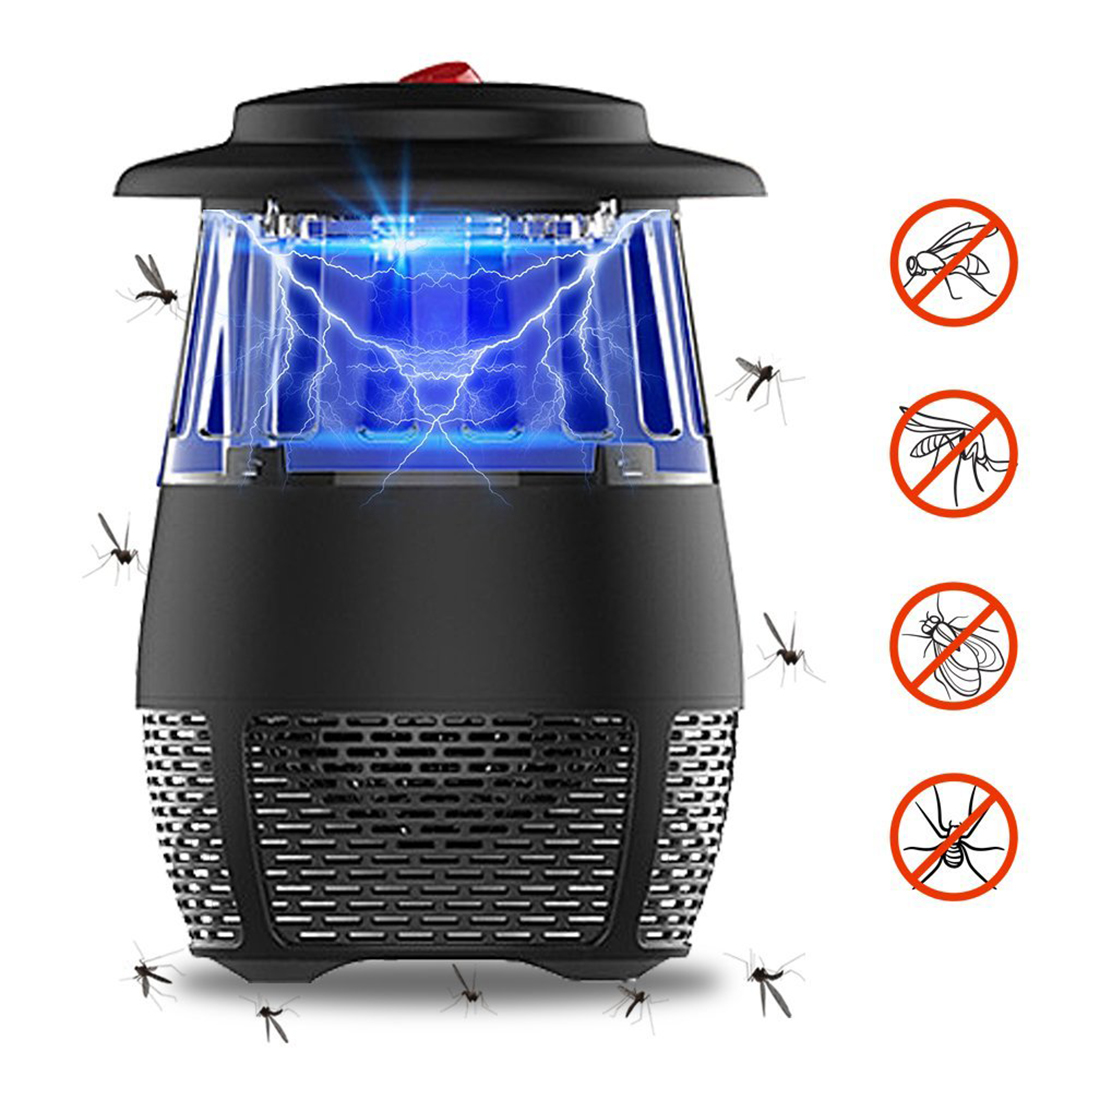 Lights & Lighting Insect Trap Usb Photocatalyst Silent Repeller Electric Led Light Mosquito Killer Lamp Durable Energy Saving Safe Multifunctional Outdoor Lighting